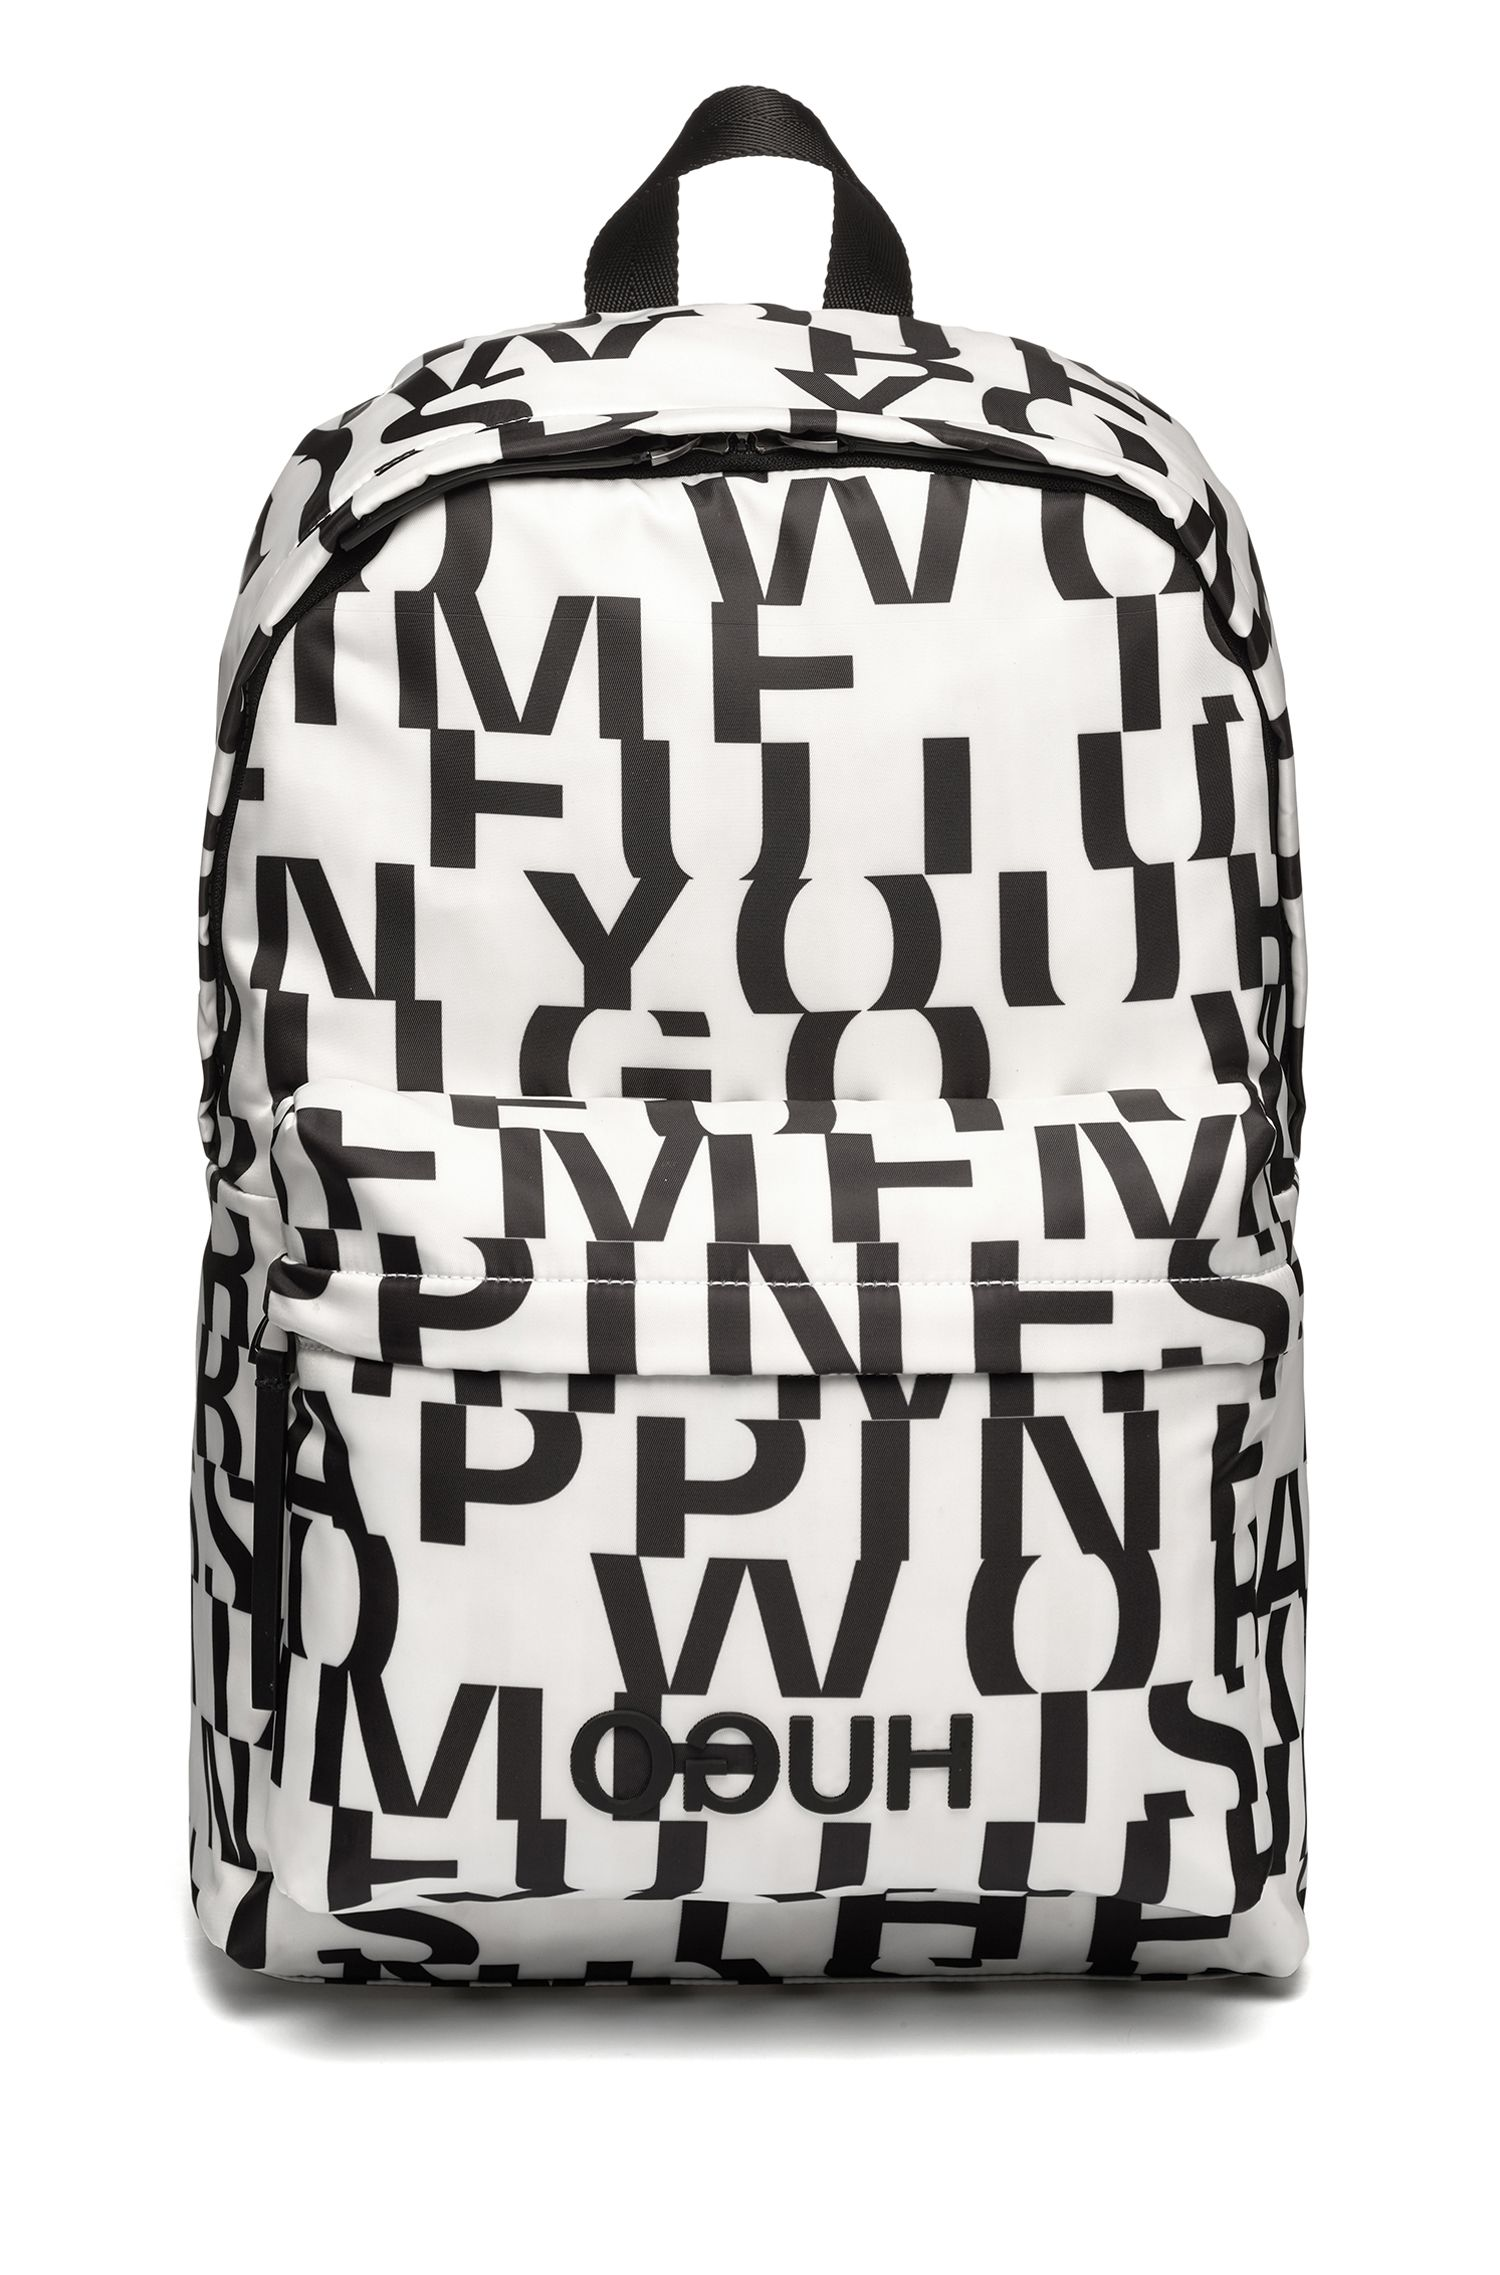 Nylon backpack with abstract slogan motif